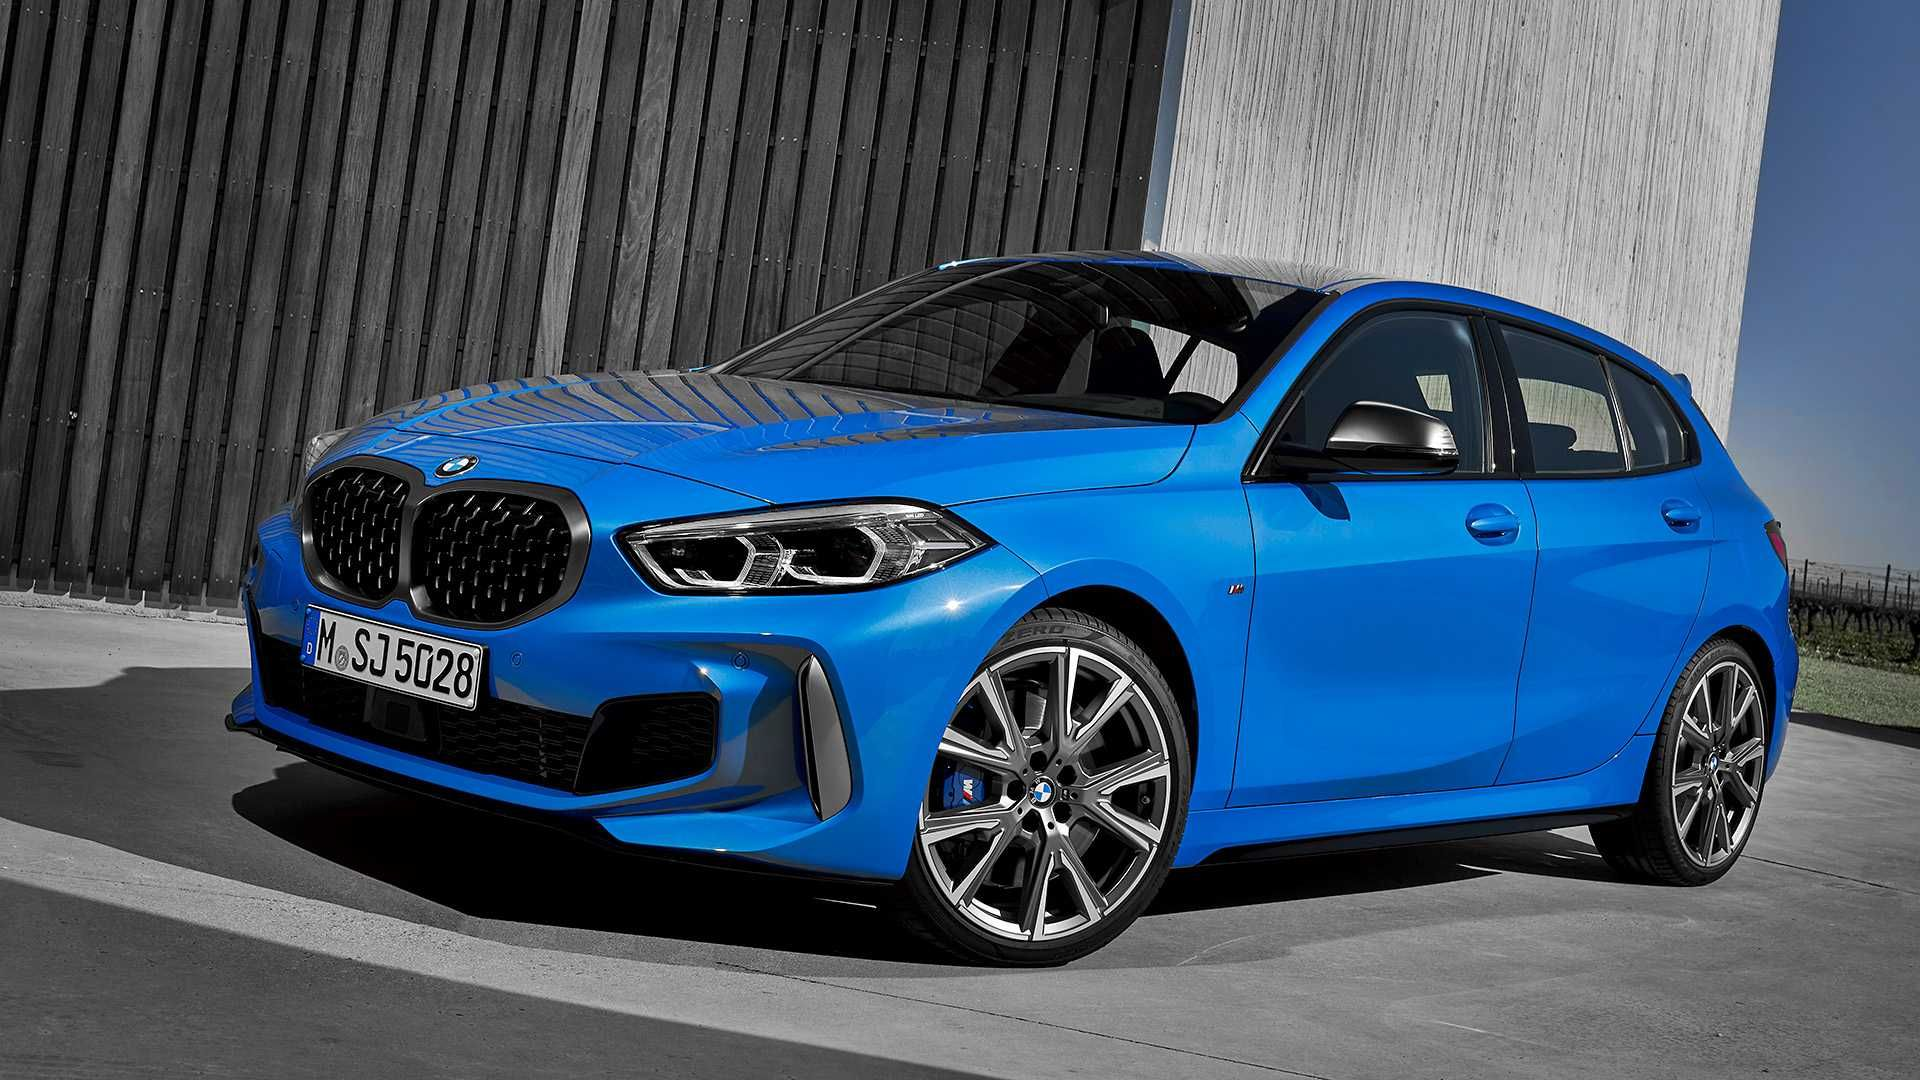 2020 Bmw 1 Series Officially Revealed With M135i Hot Hatch